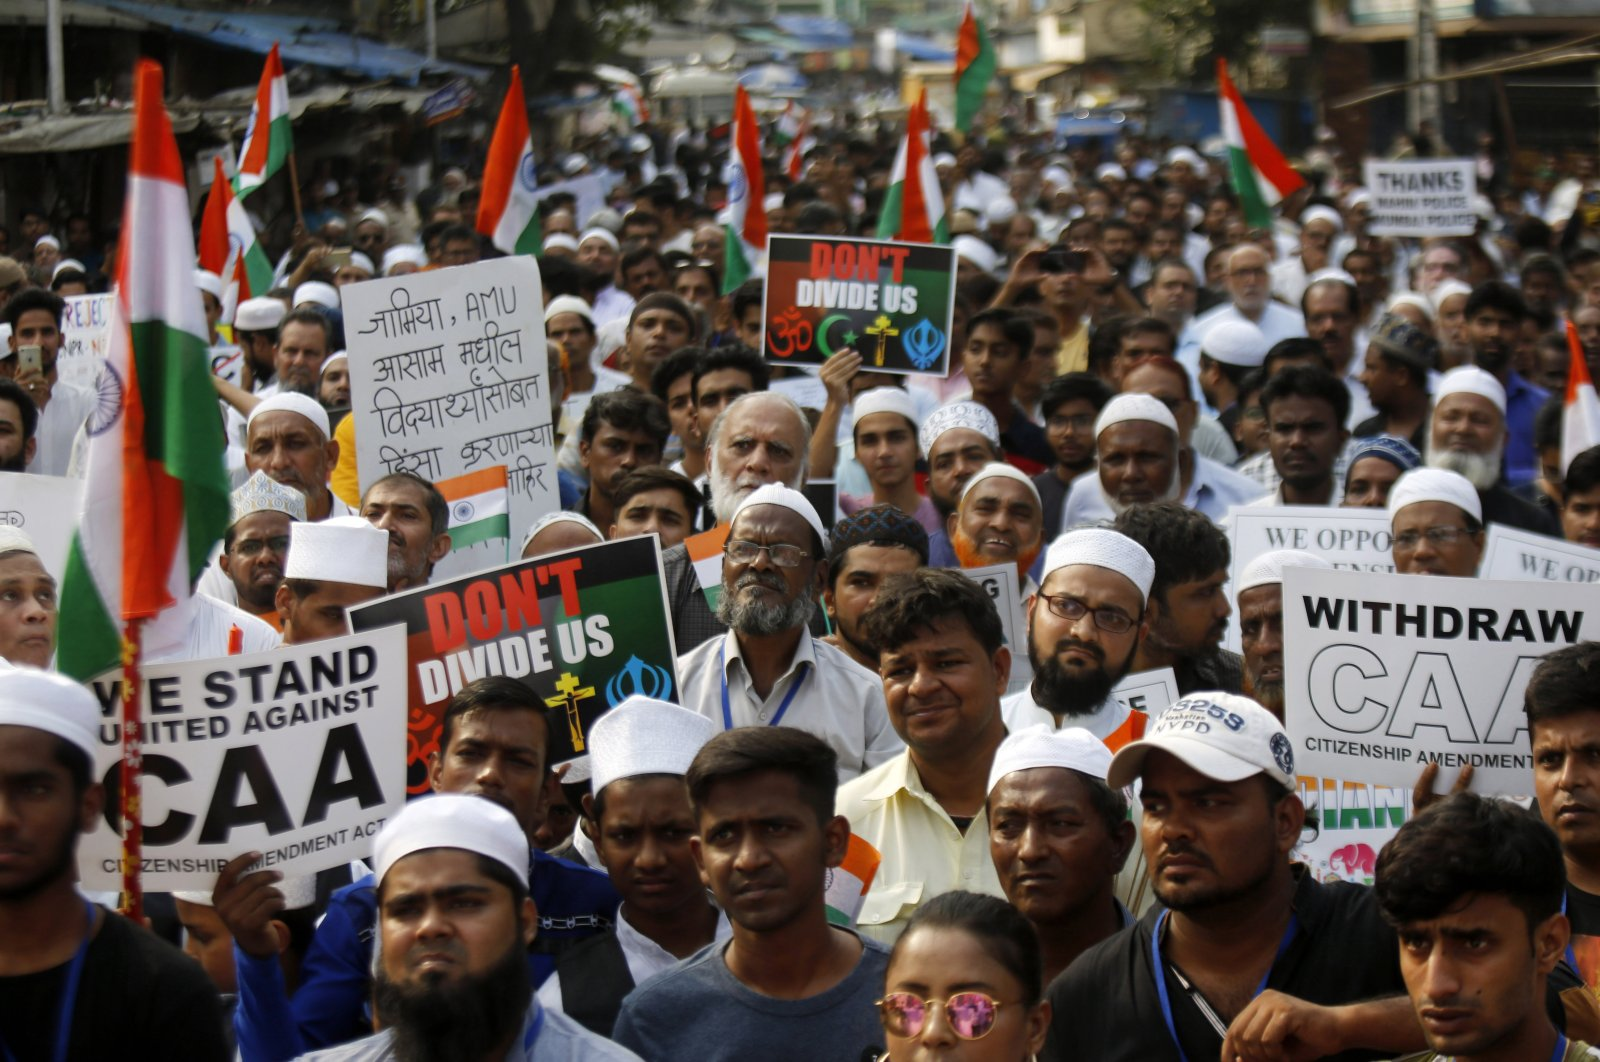 People participate in a protest rally against the Citizen Amendment Act in Mumbai, India, Dec. 28, 2019. (AP Photo)